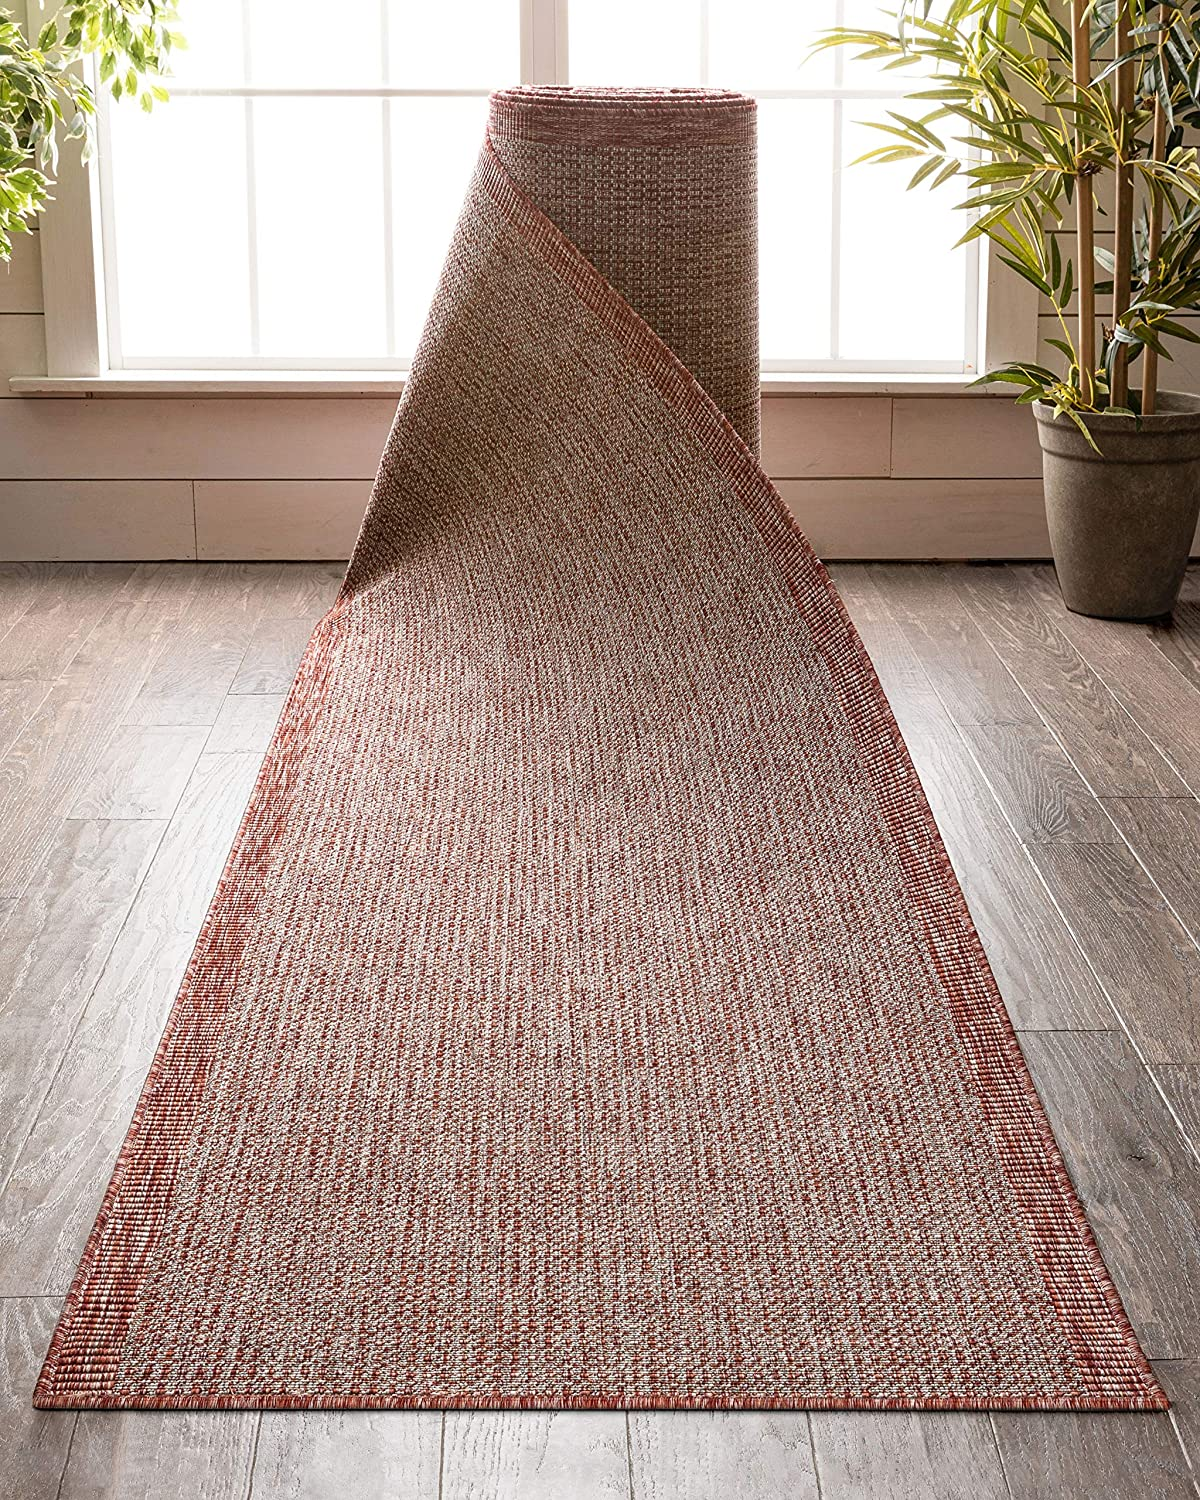 Custom Size Sale price Indoor Max 61% OFF Outdoor Runner-Choose Your Coral Length-Woden